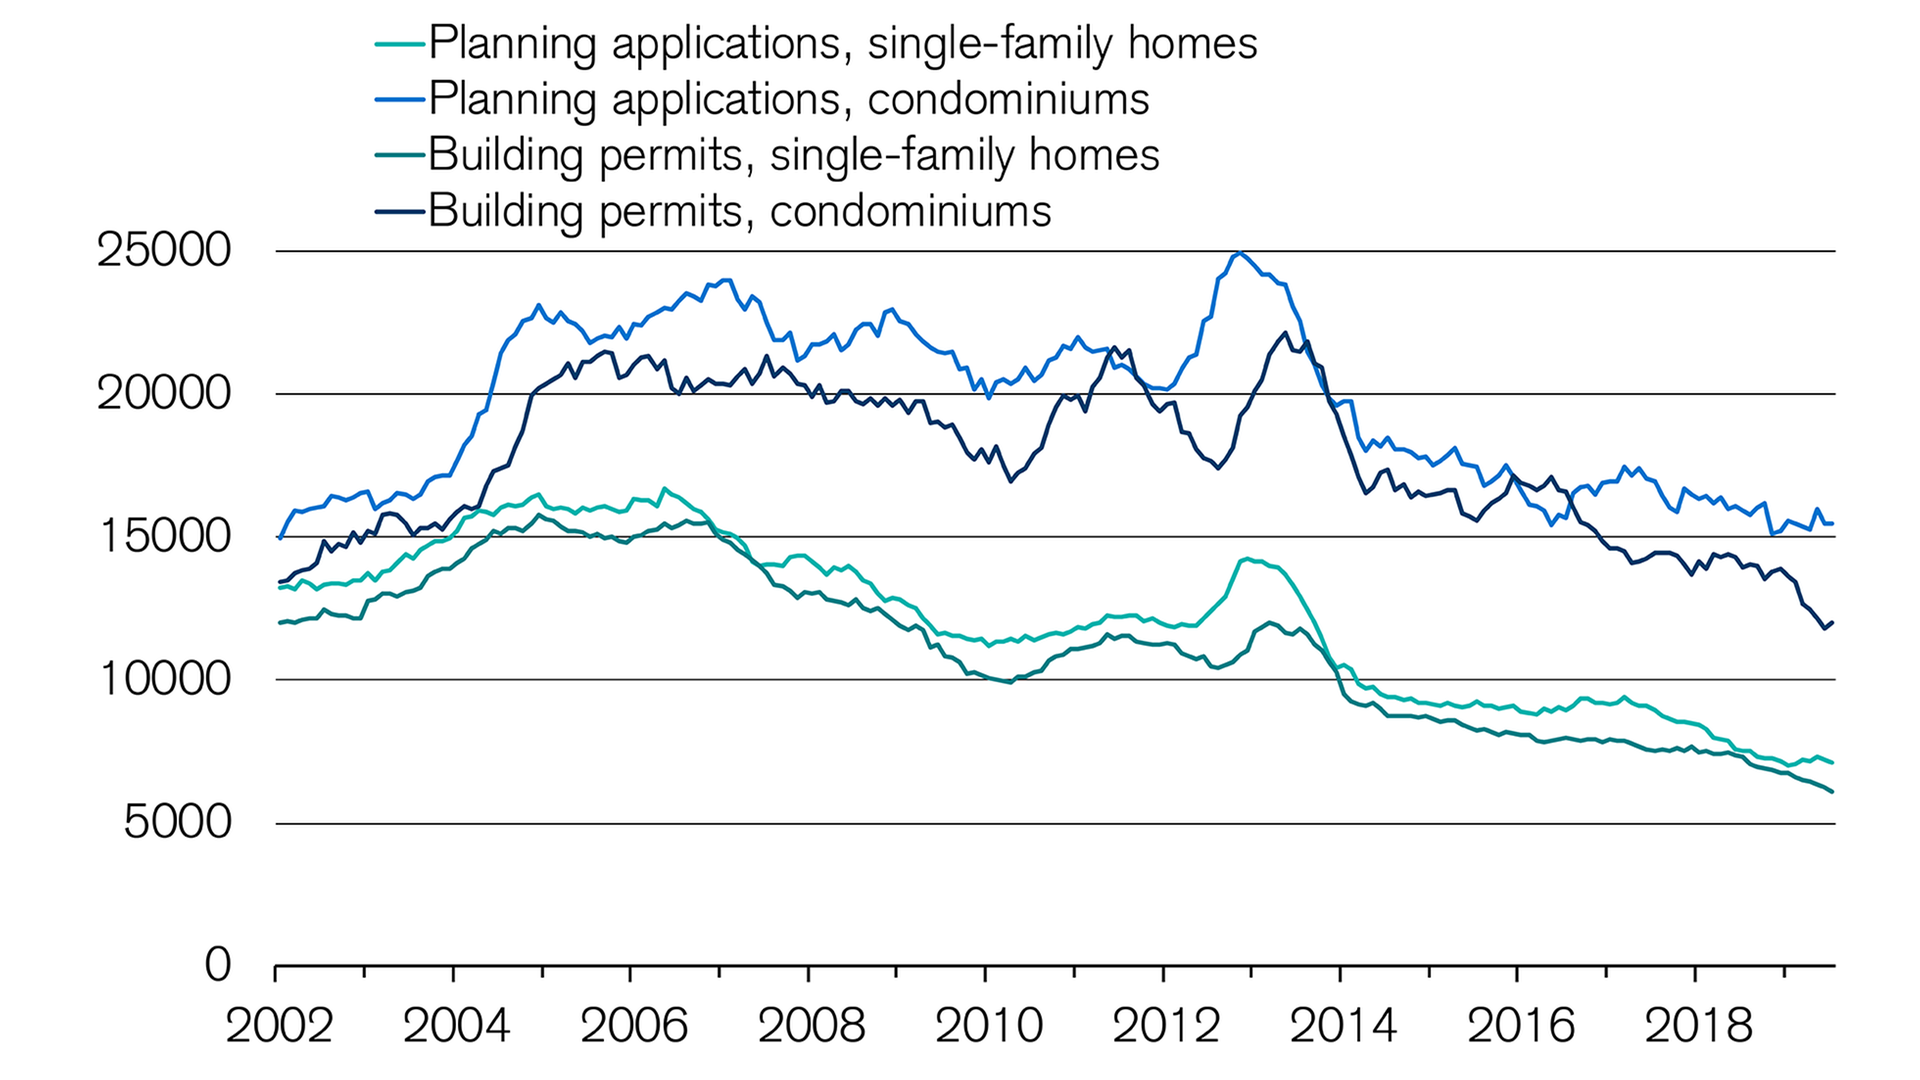 construction-activity-in-the-housing-market-is-slowing